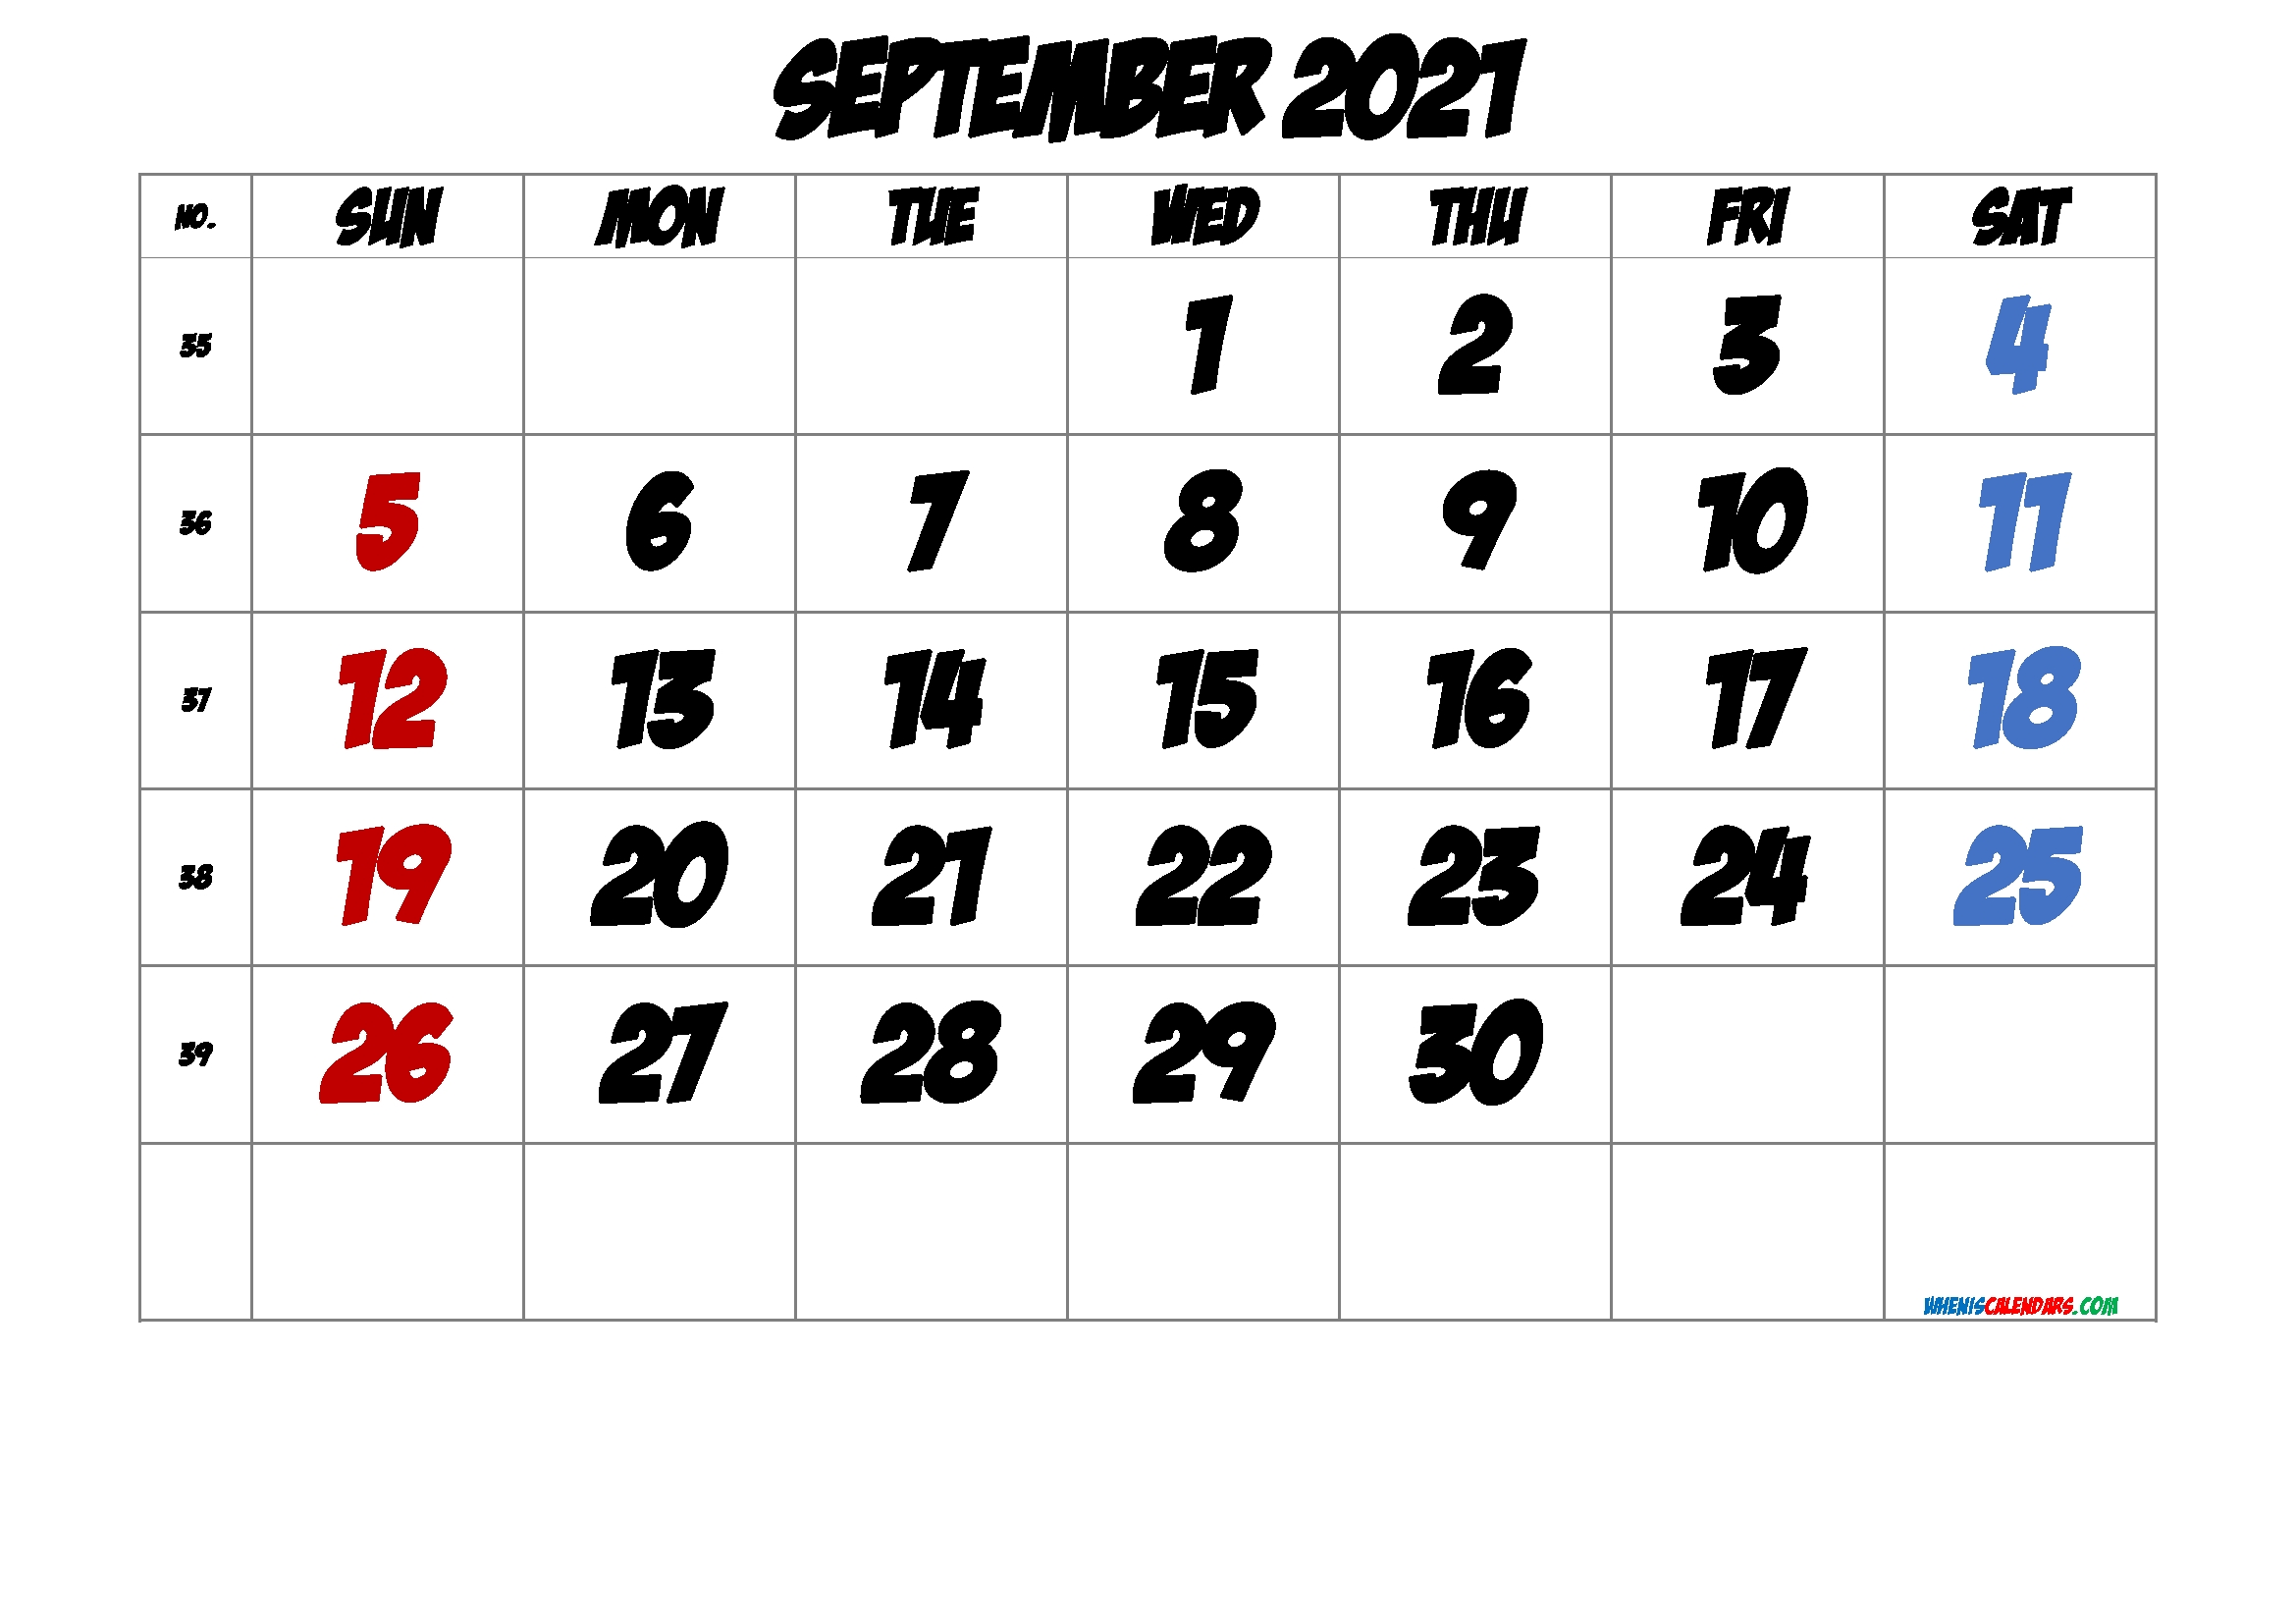 Free September 2021 Calendar [Free Premium] In 2020 | 2021 Calendar, Calendar Printables-Sepetember 2021 Calendar With Big Numbers